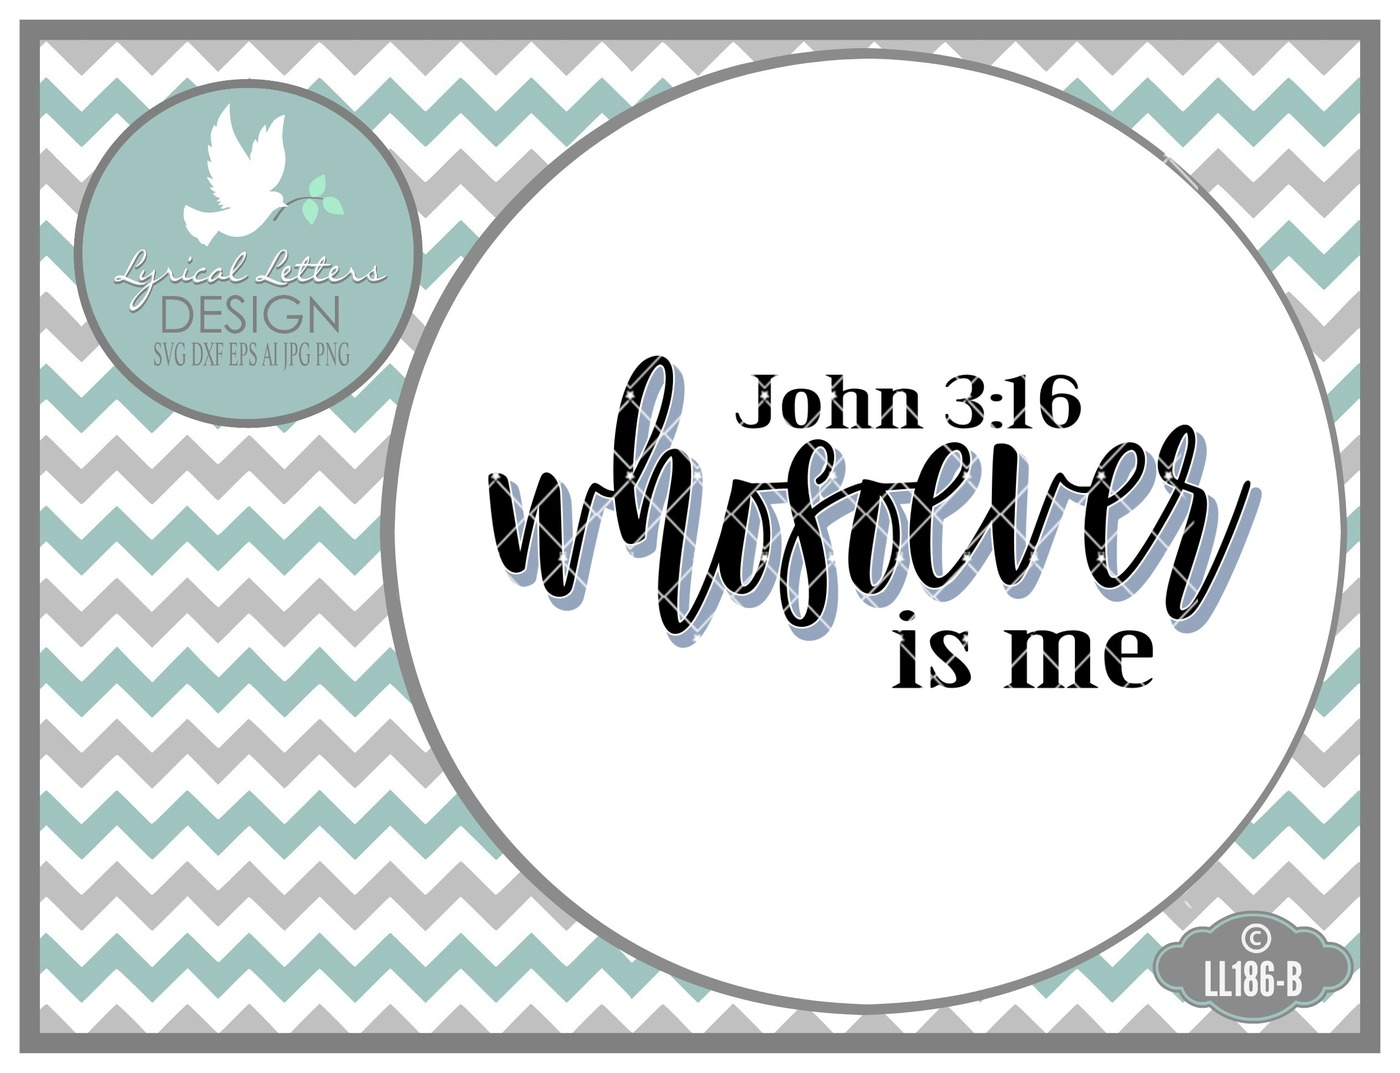 Whosoever Is Me John 3-16